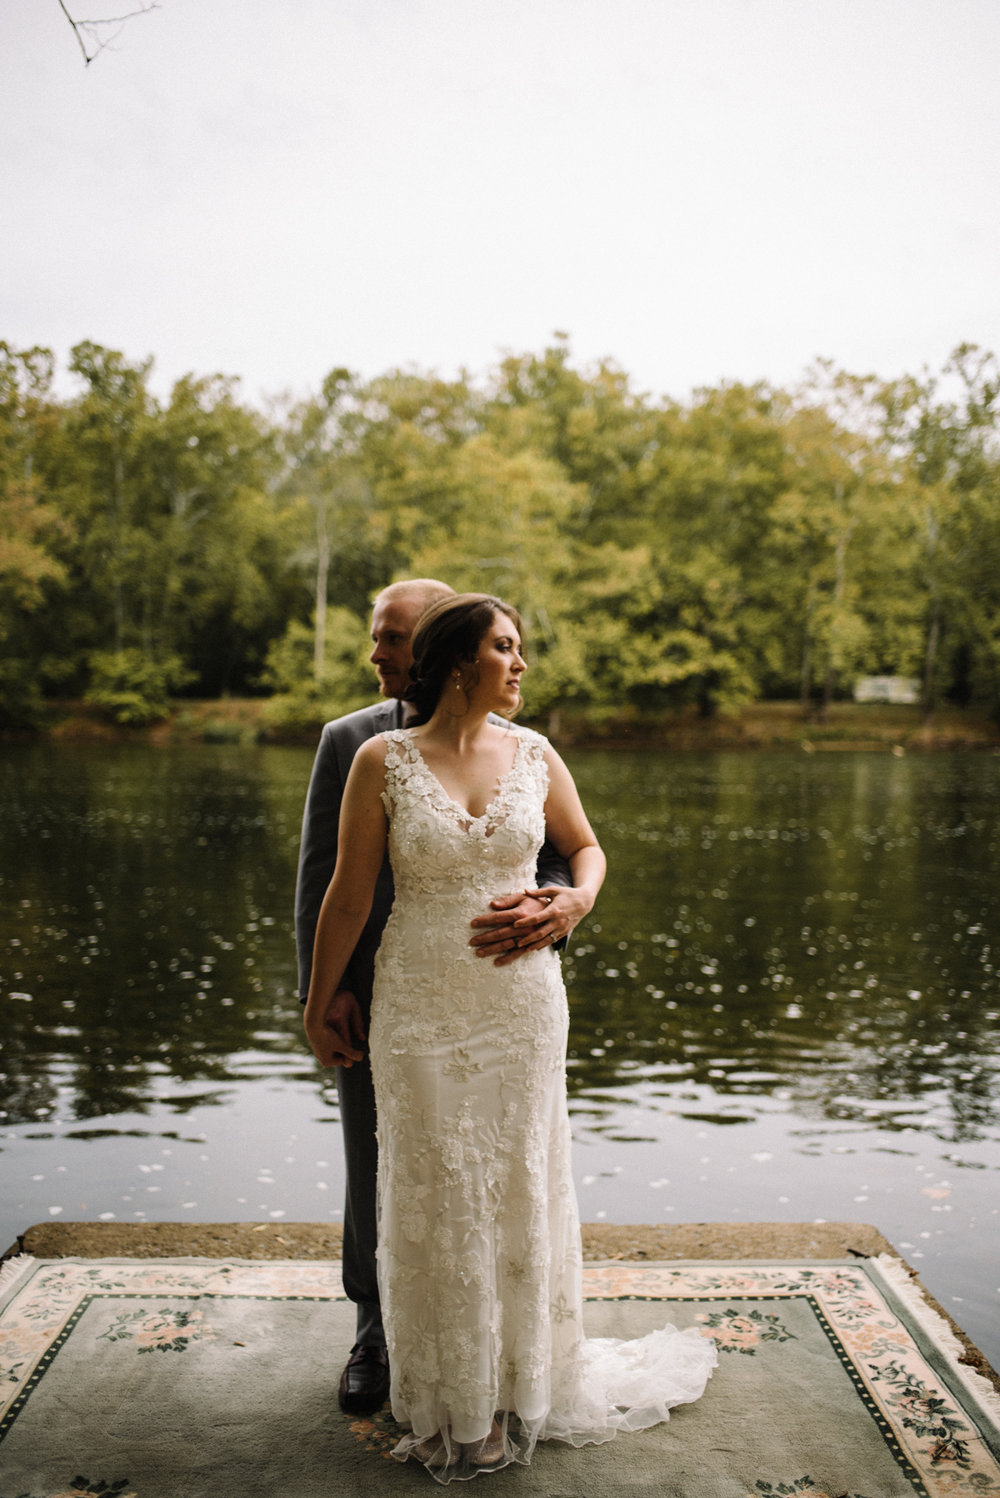 Mandi-and-Jordan-Intimate-Backyard-River-Wedding-Shenandoah-Valley_50.JPG